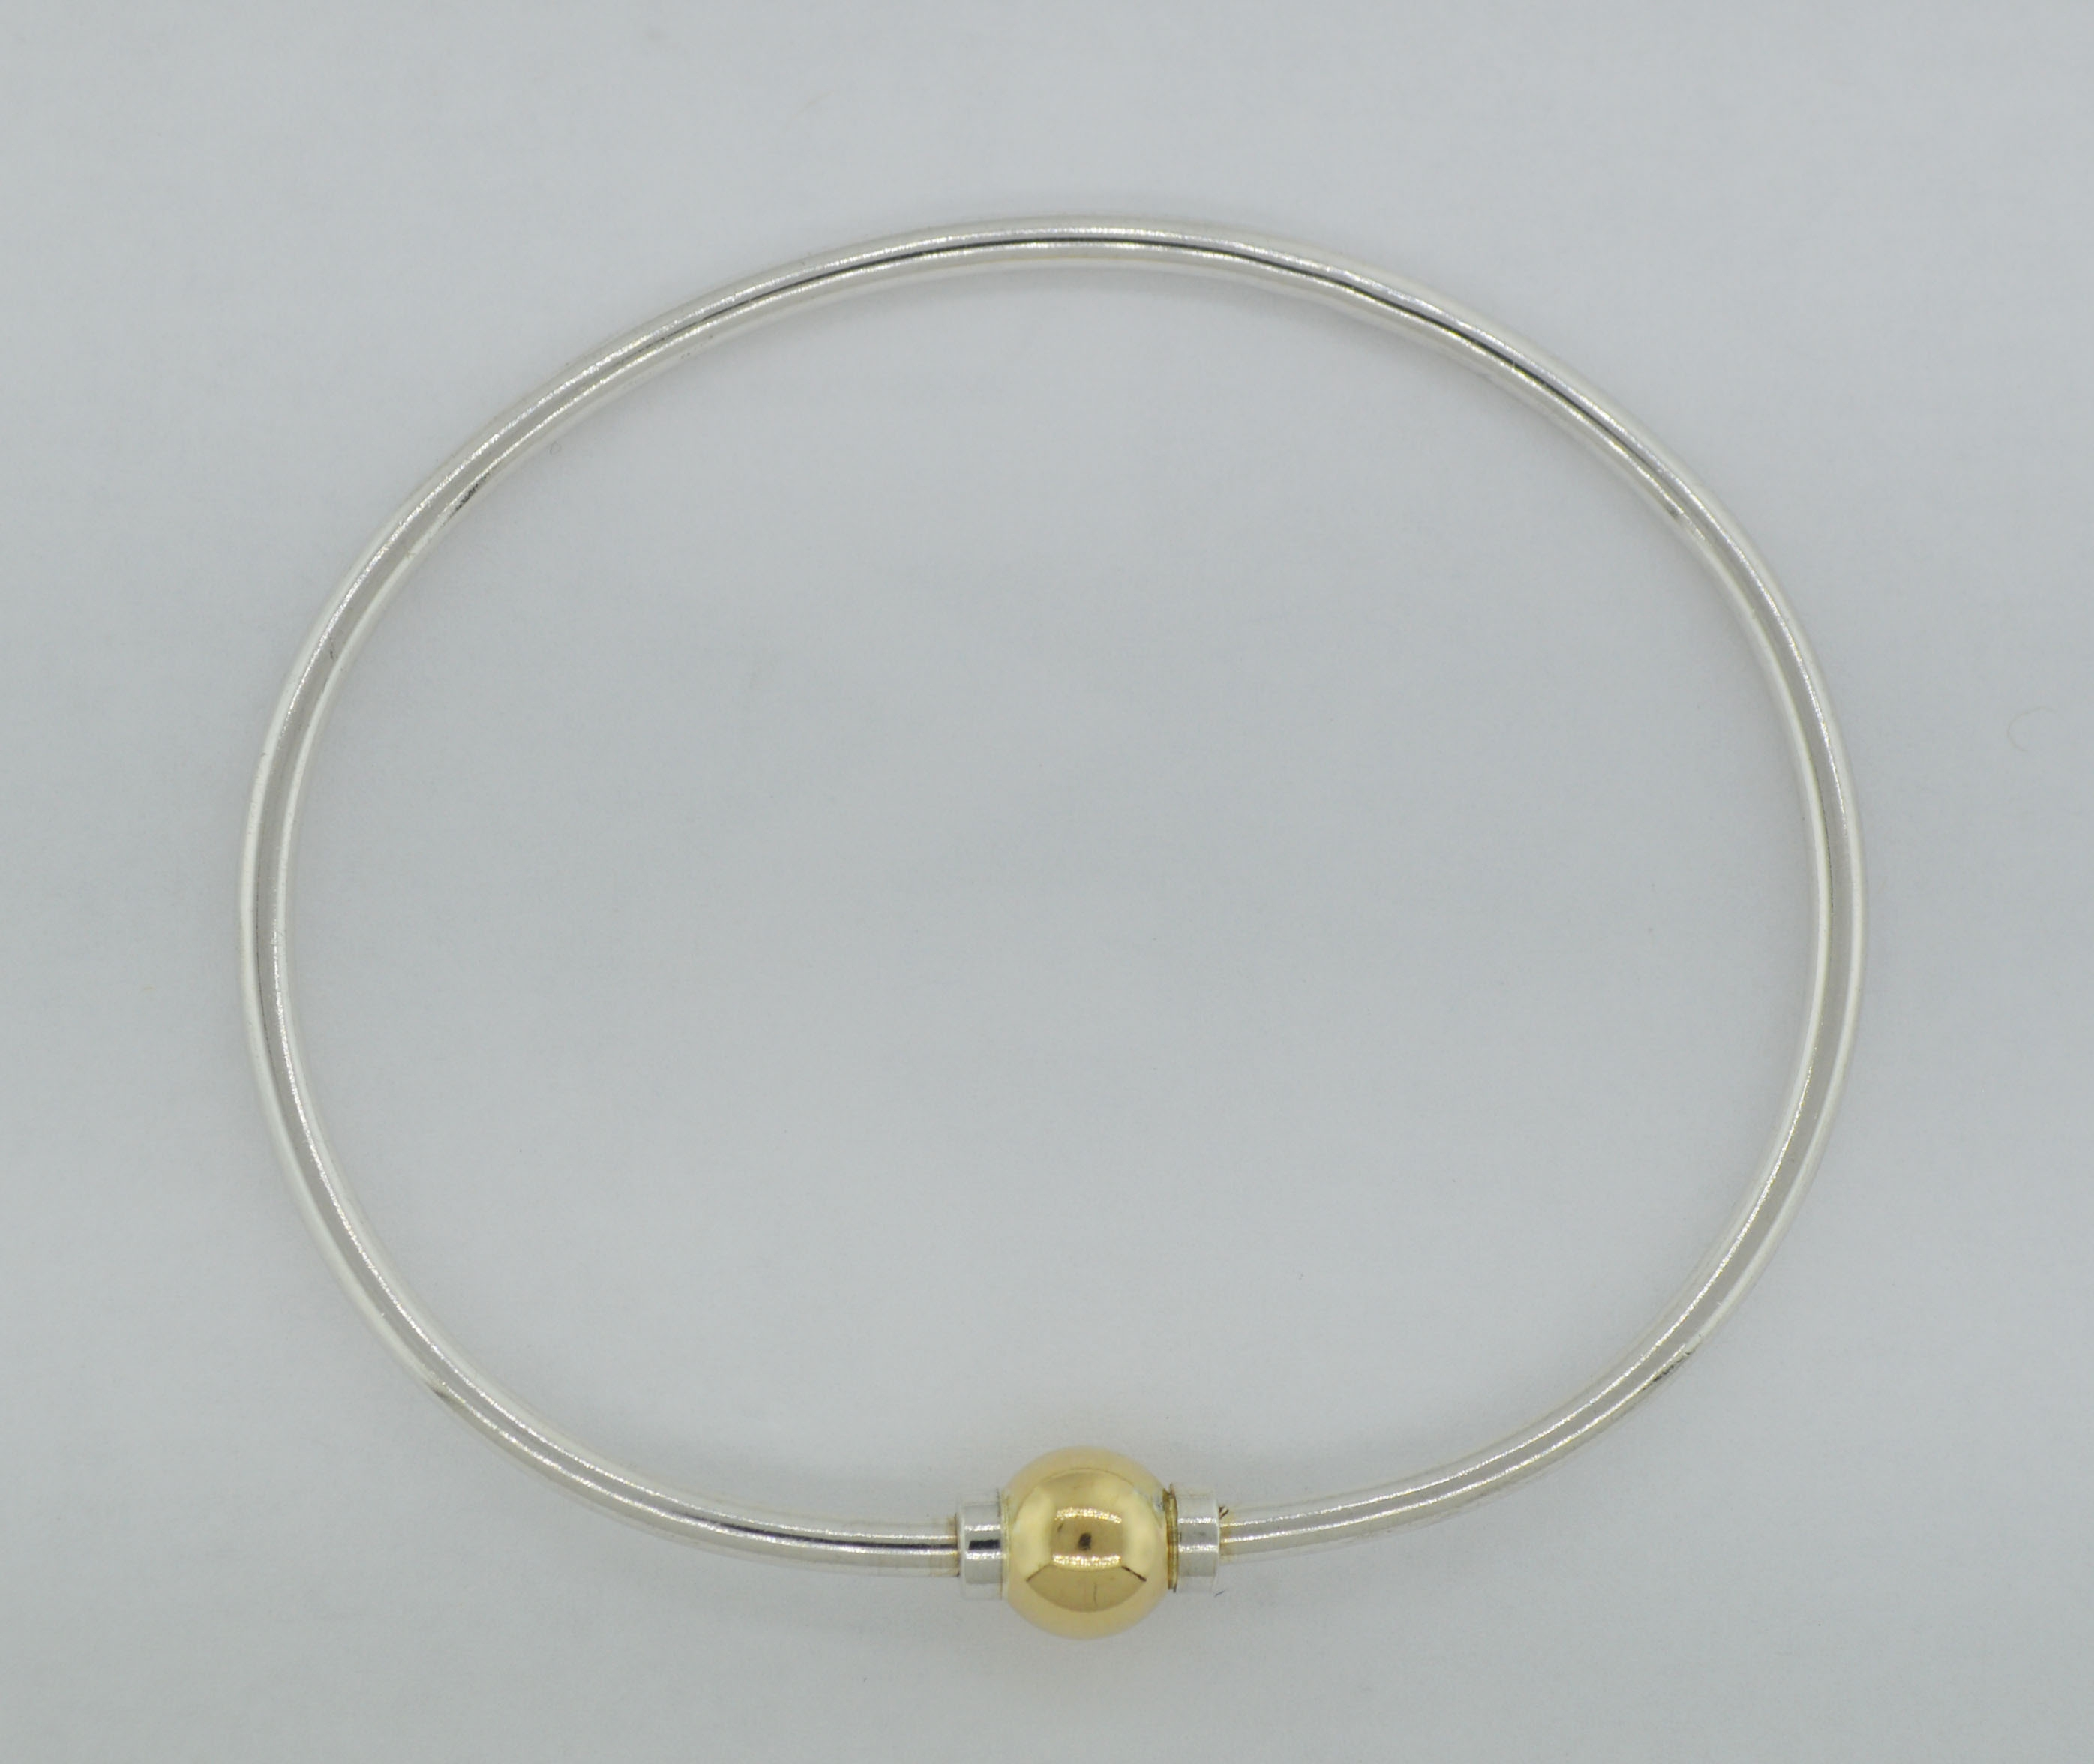 Cape Cod Sterling Silver 14k Gold Bead Ball Cuff Bangle Bracelet Size 7